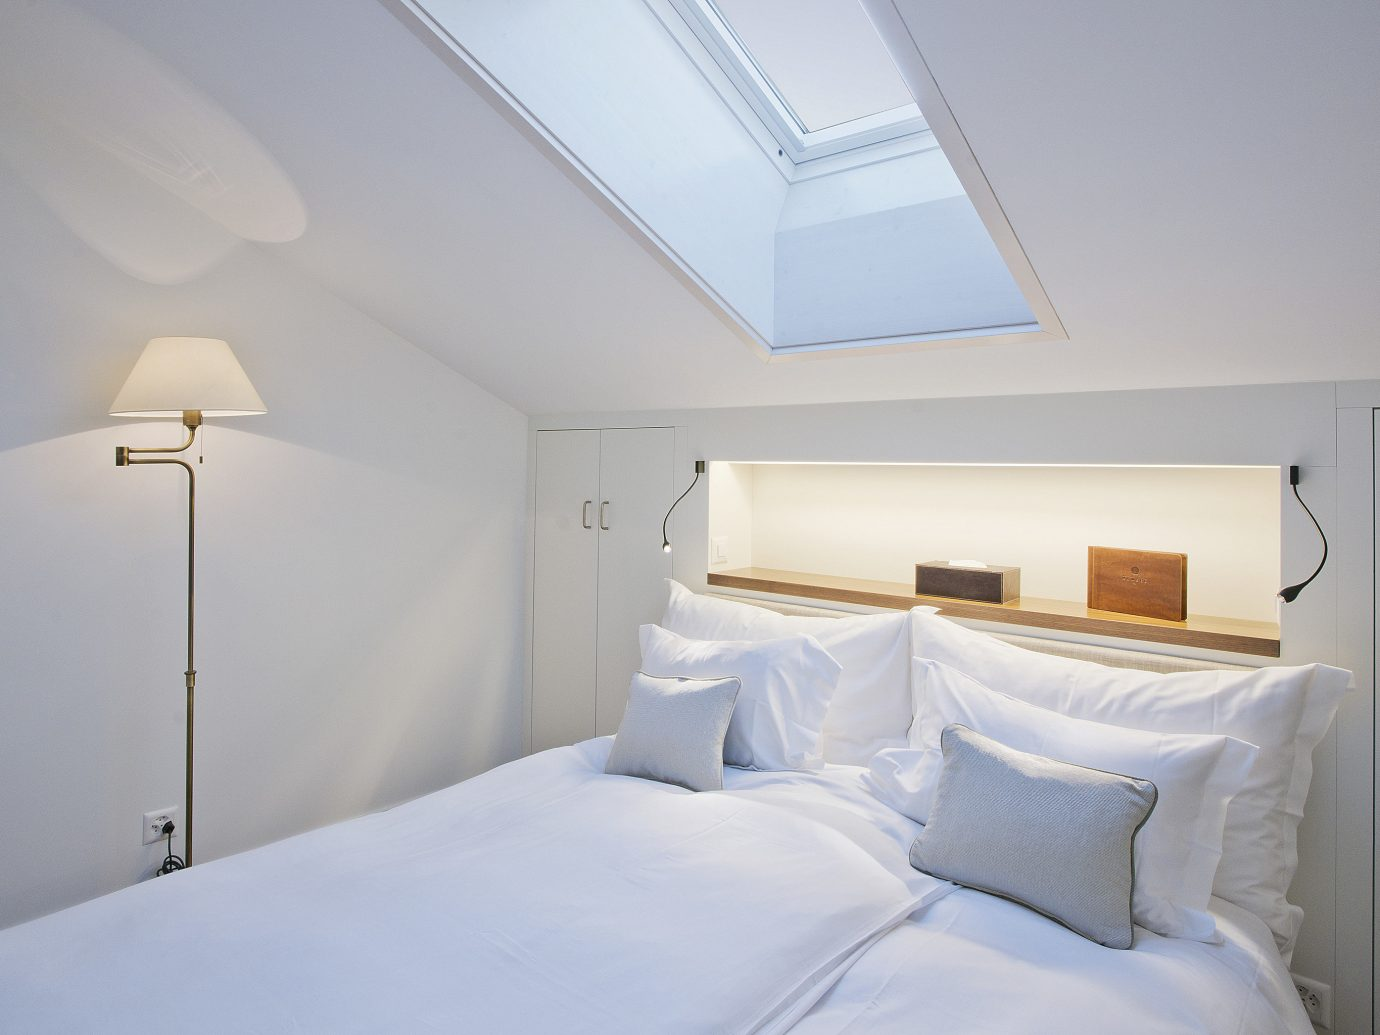 Offbeat bed indoor wall room property white Bedroom hotel cottage ceiling real estate floor Suite pillow apartment estate